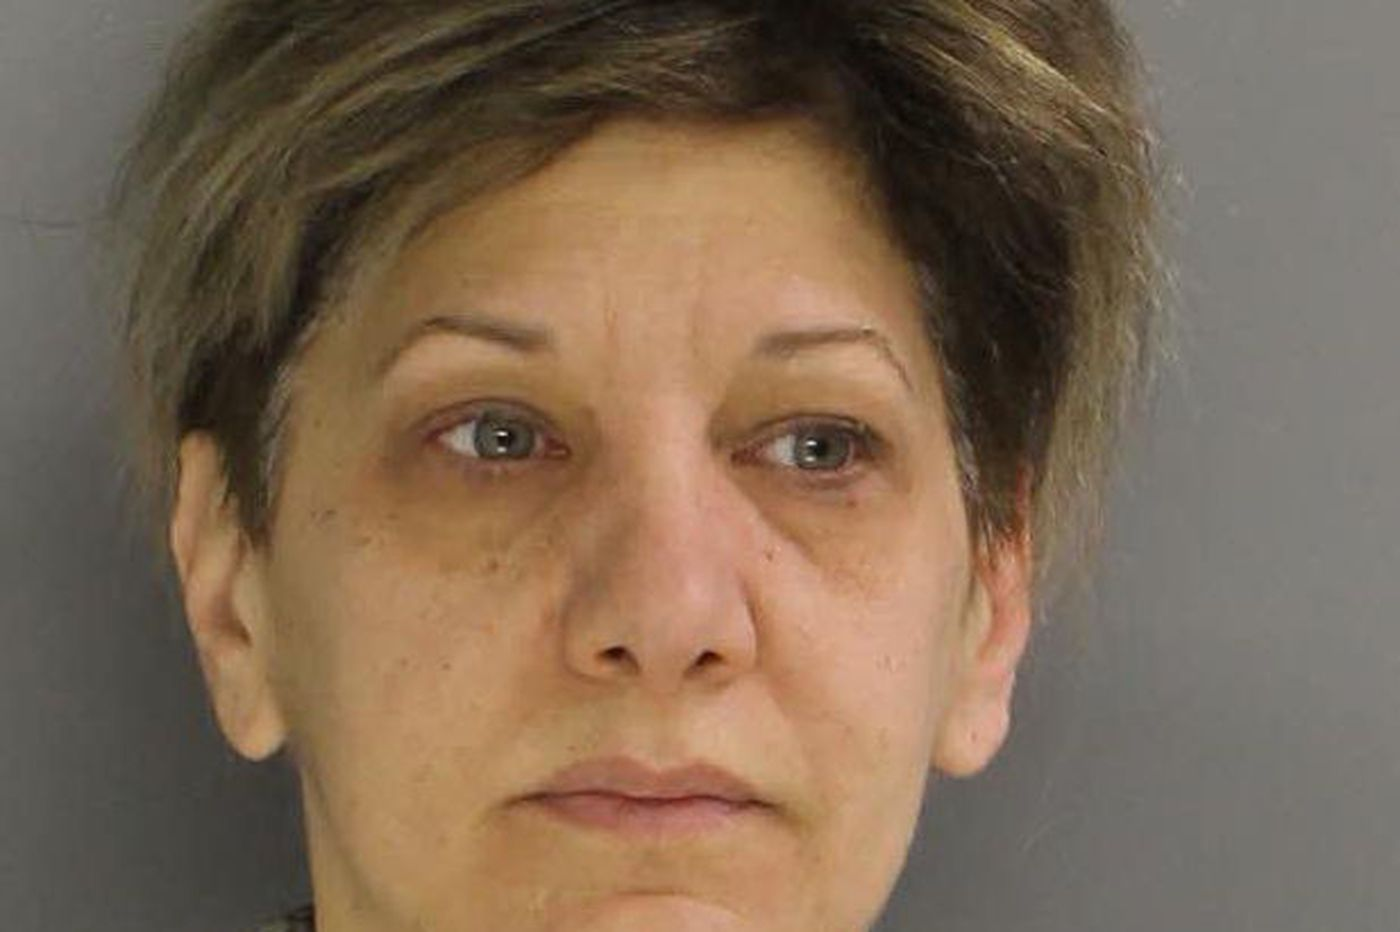 Delaware County woman stole more than $337K from her elderly mom, authorities say